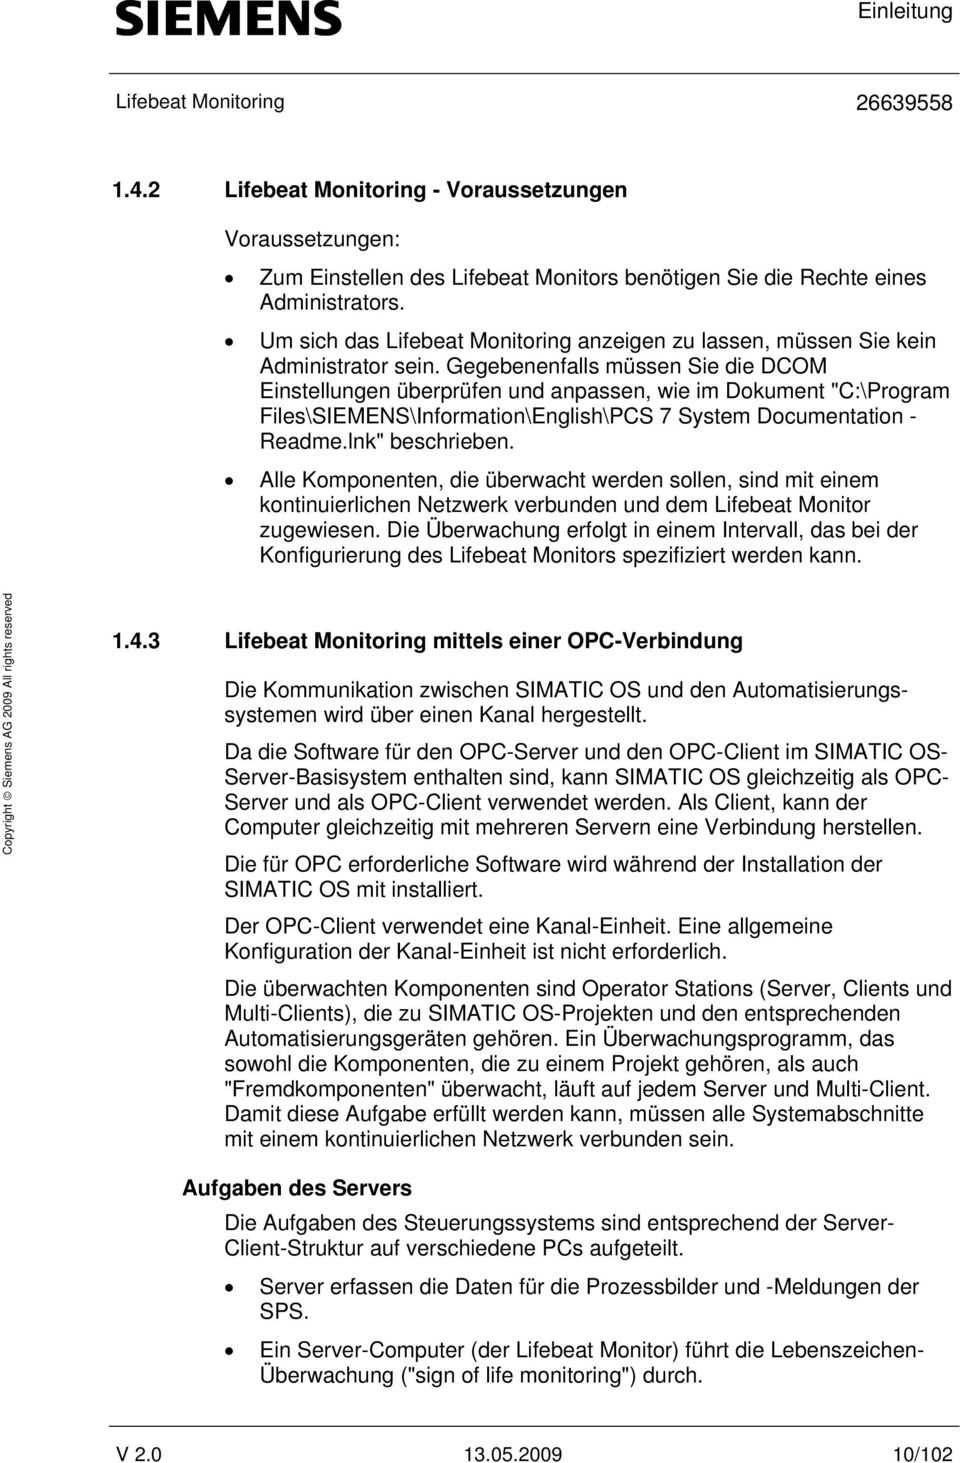 "Gegebenenfalls müssen Sie die DCOM Einstellungen überprüfen und anpassen, wie im Dokument ""C:\Program Files\SIEMENS\Information\English\PCS 7 System Documentation - Readme.lnk"" beschrieben."